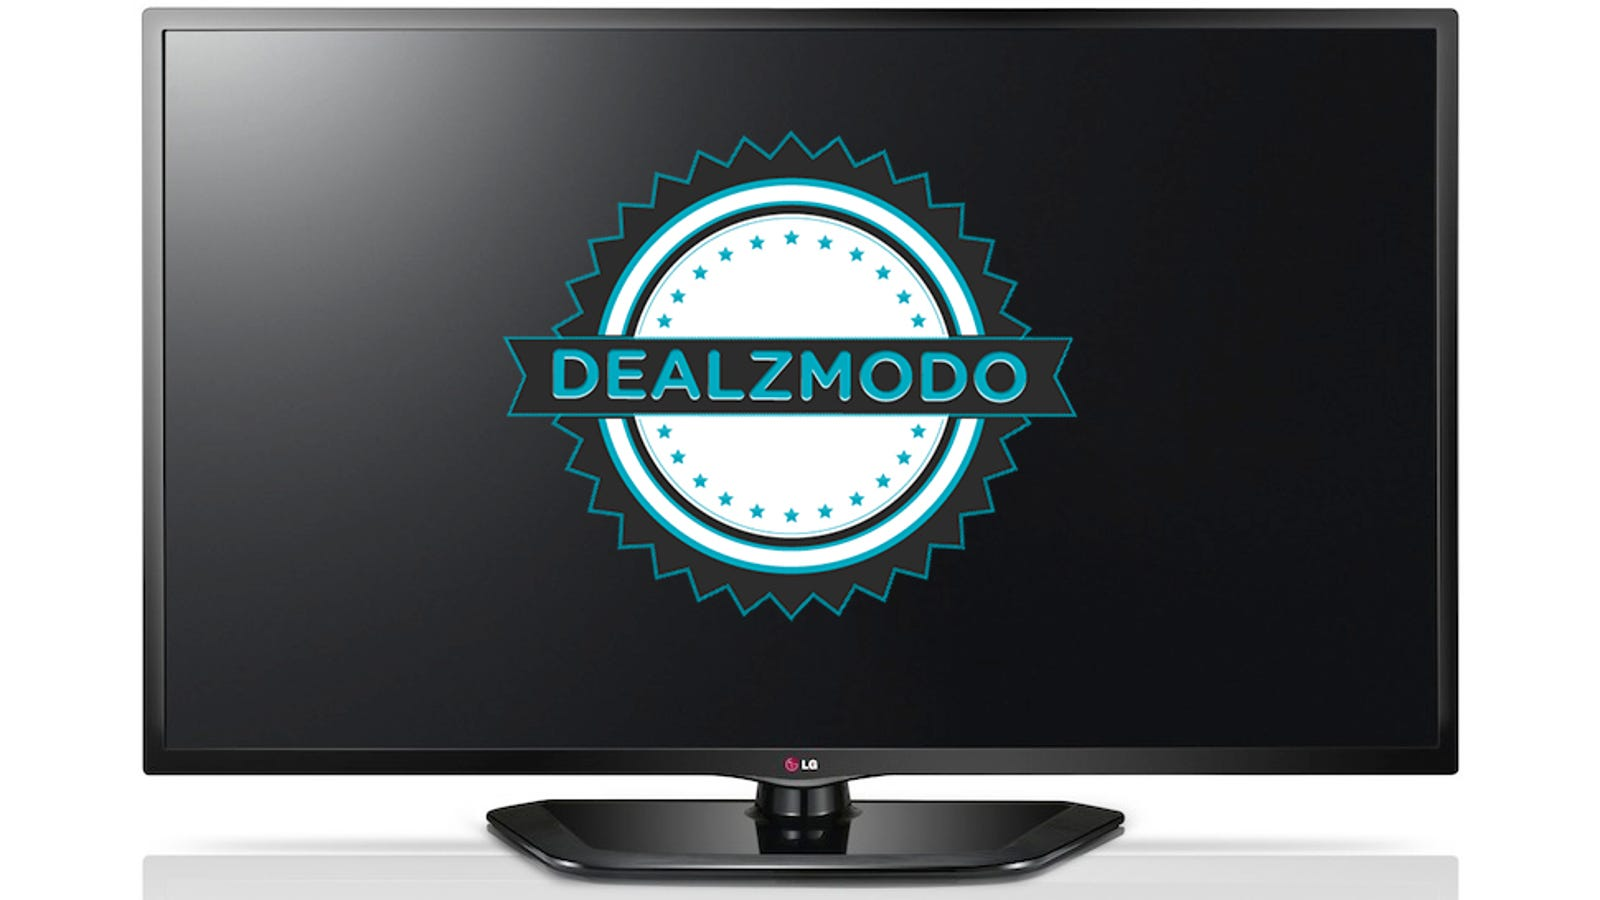 Dealzmodo: Your Pick Of Great TV Deals, Multi-Touch Monitor